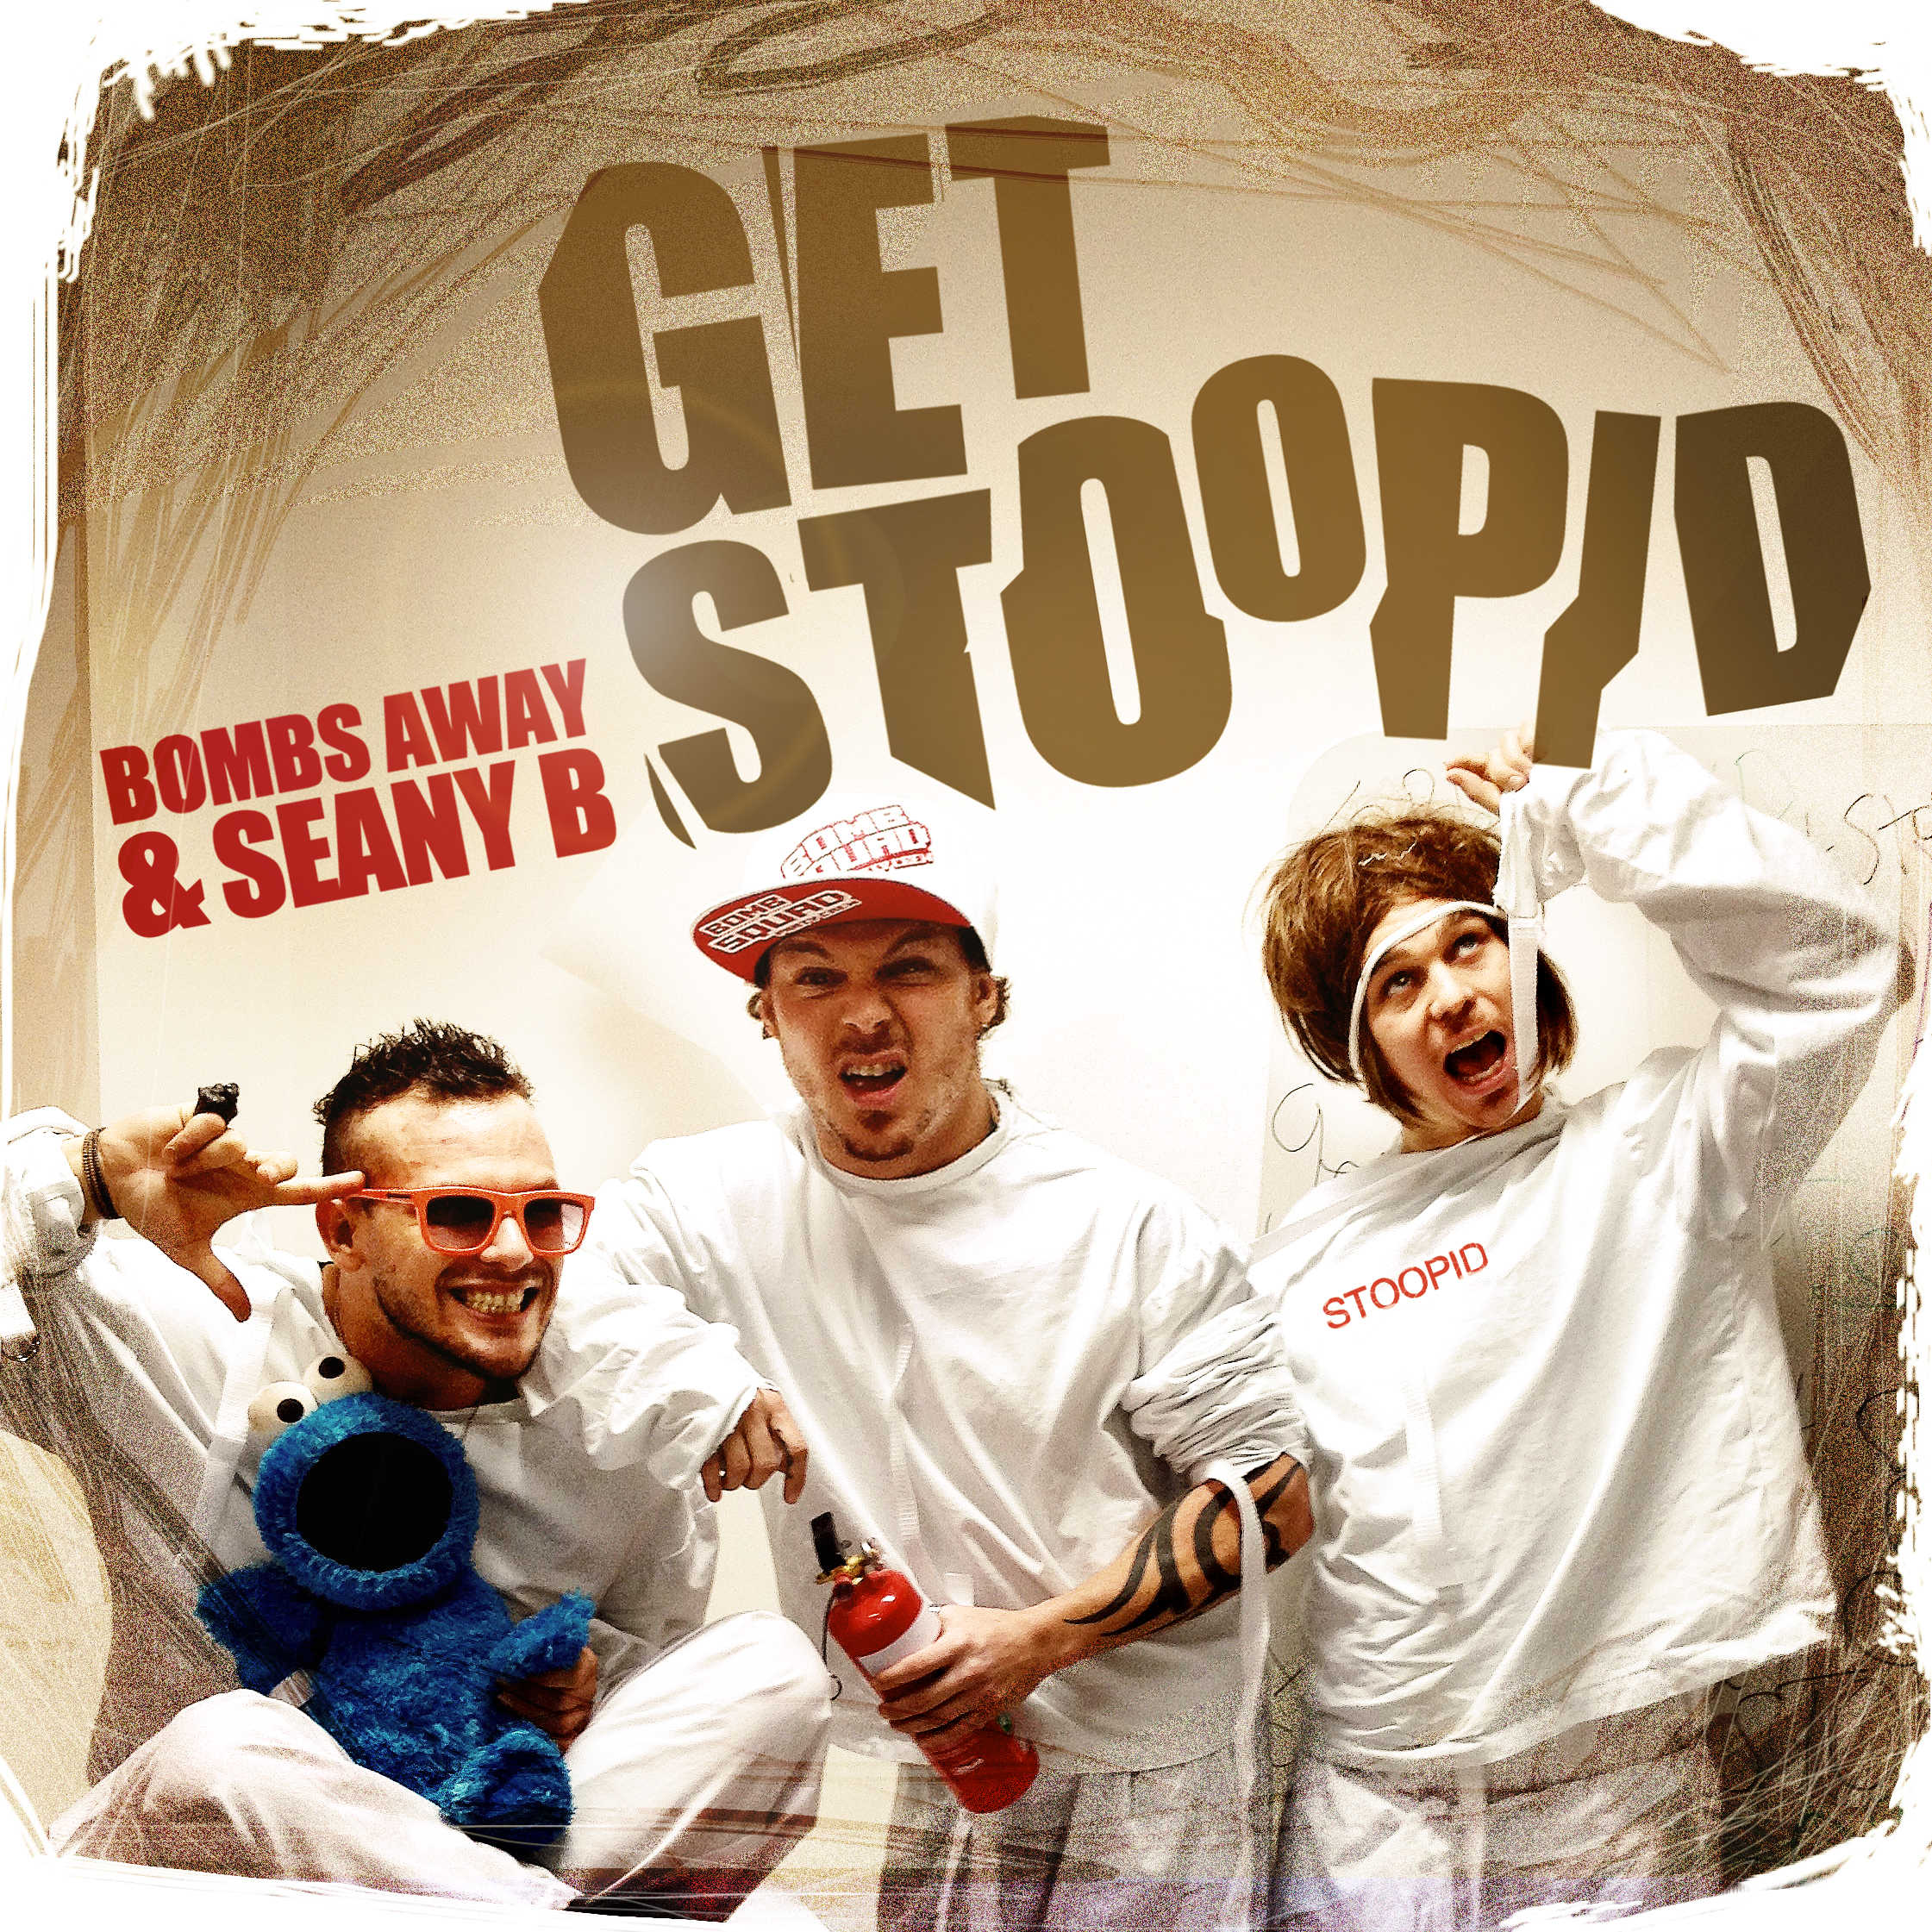 Bombs Away – Get Stoopid